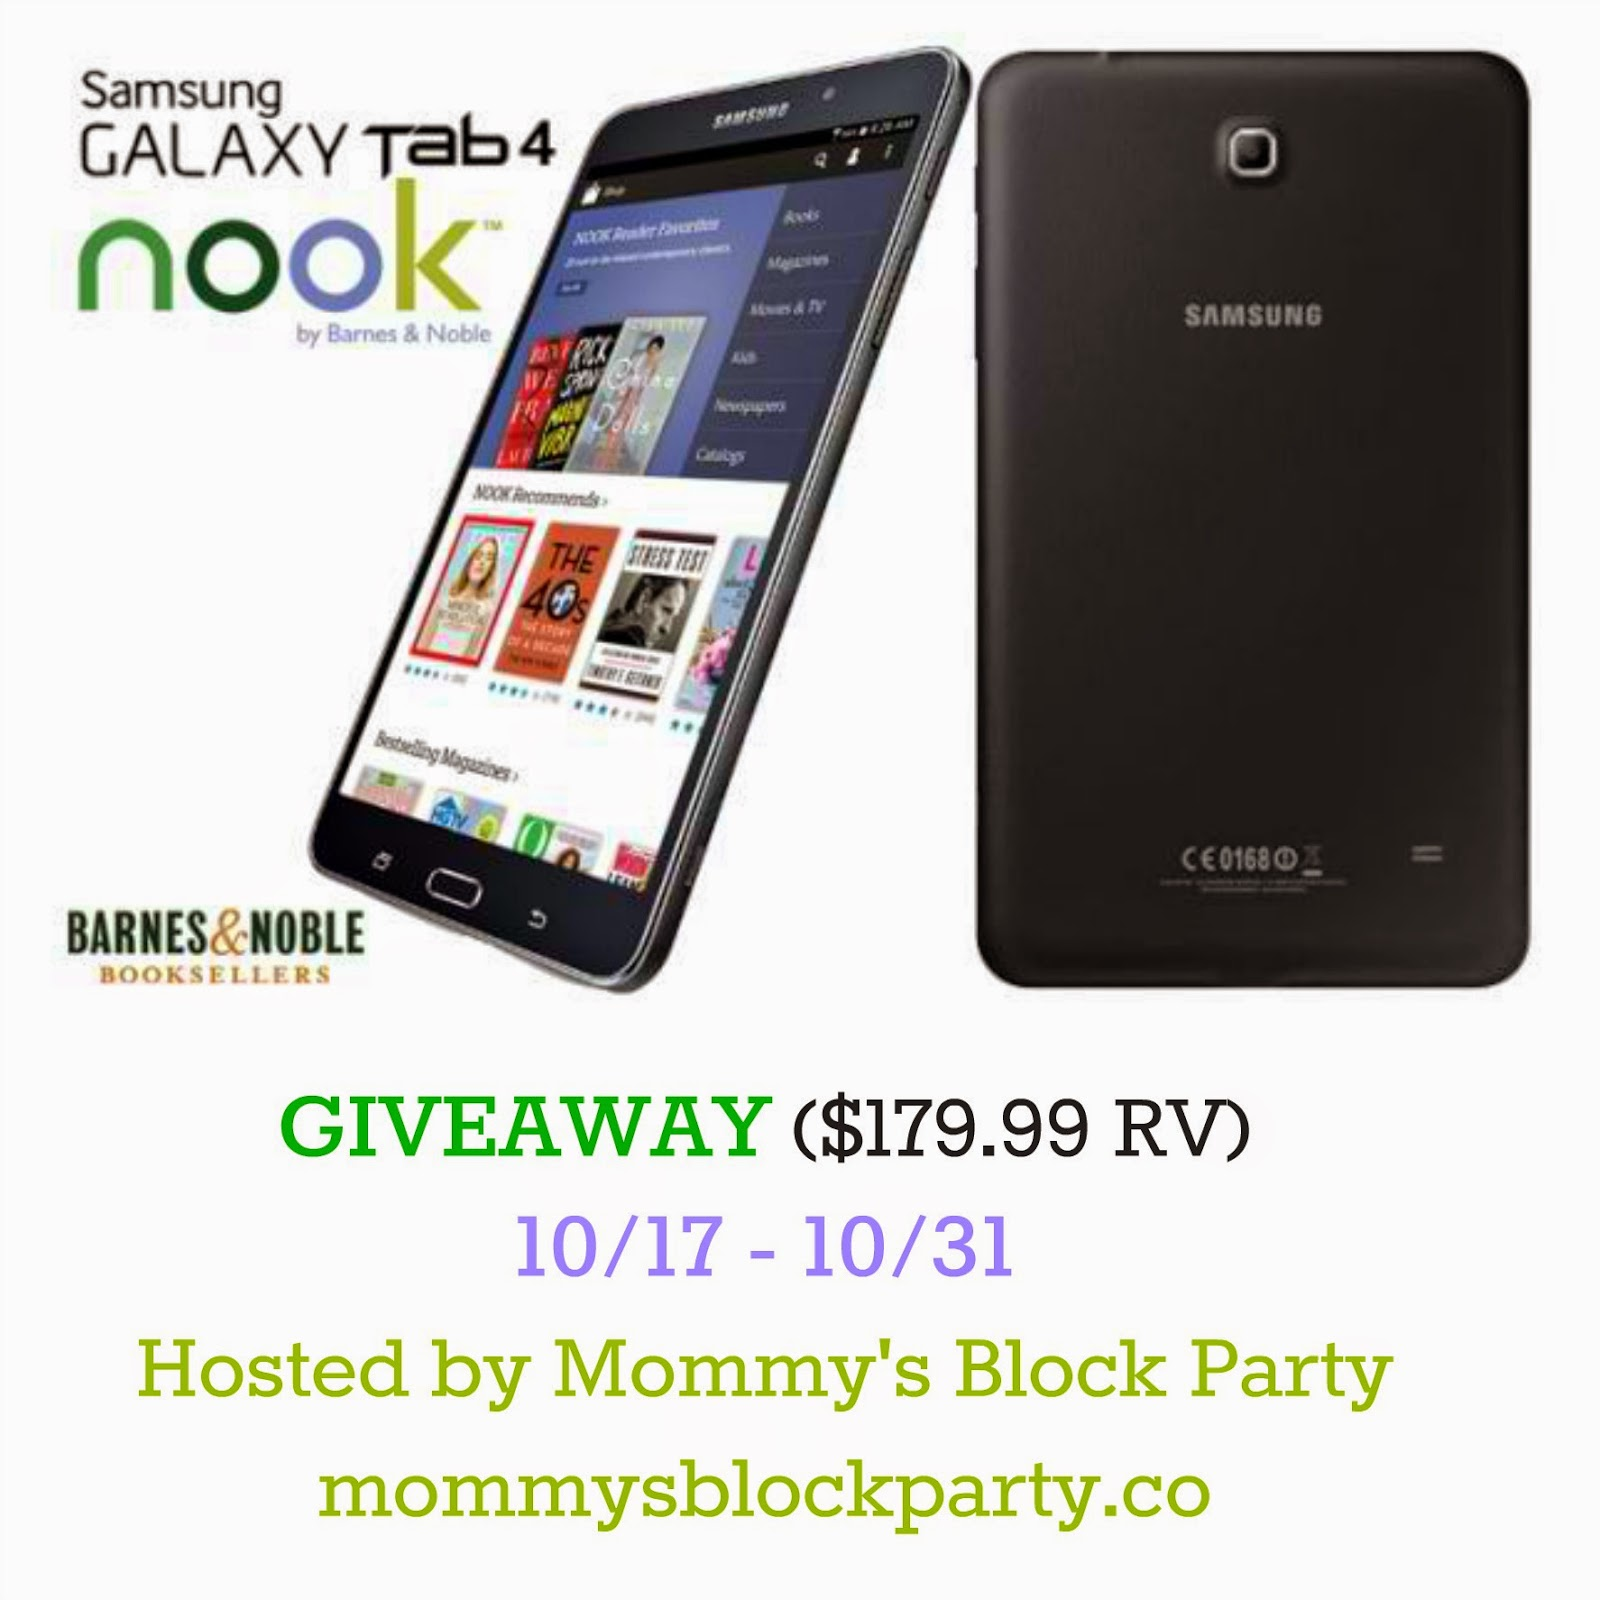 Giveaway: Samsung Galaxy Tab 4 NOOK ends 10/31